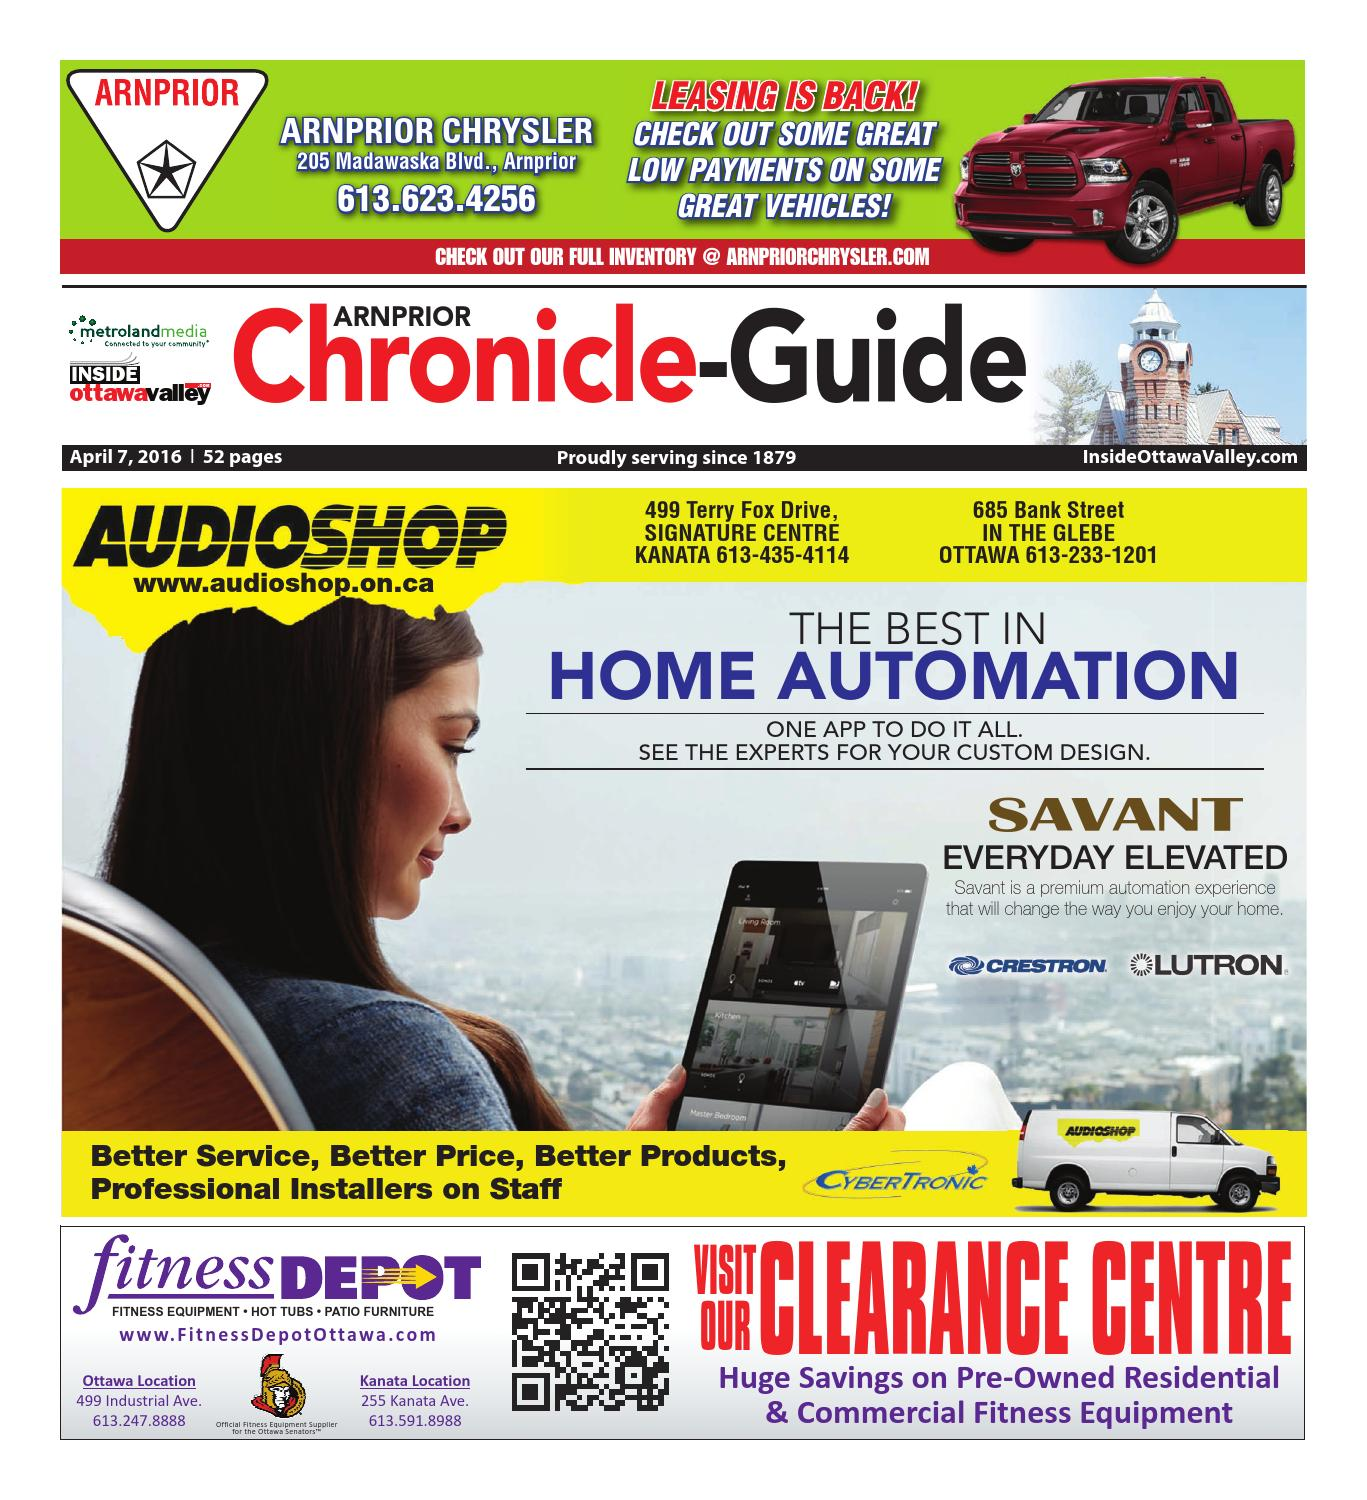 6c7db127508 Arnprior040716 by Metroland East - Arnprior Chronicle-Guide - issuu